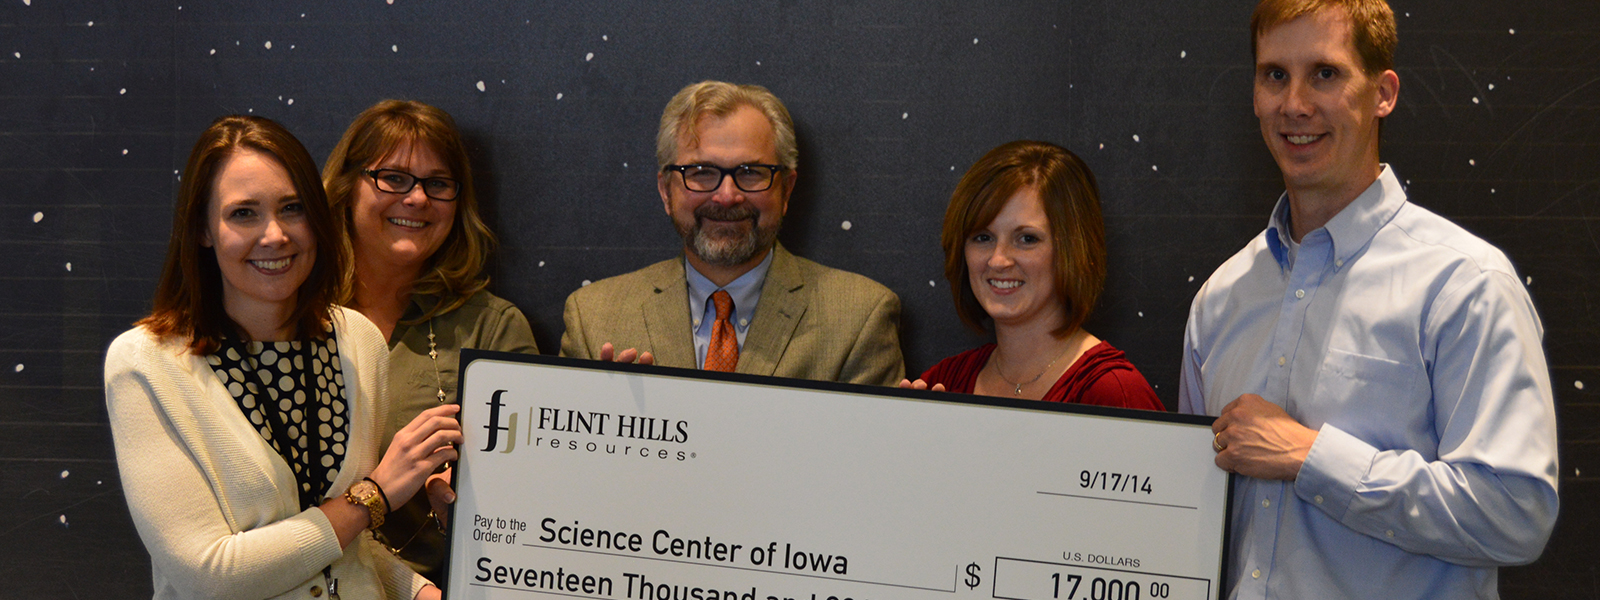 Flint Hills Resources Donates to Science Center of Iowa Education